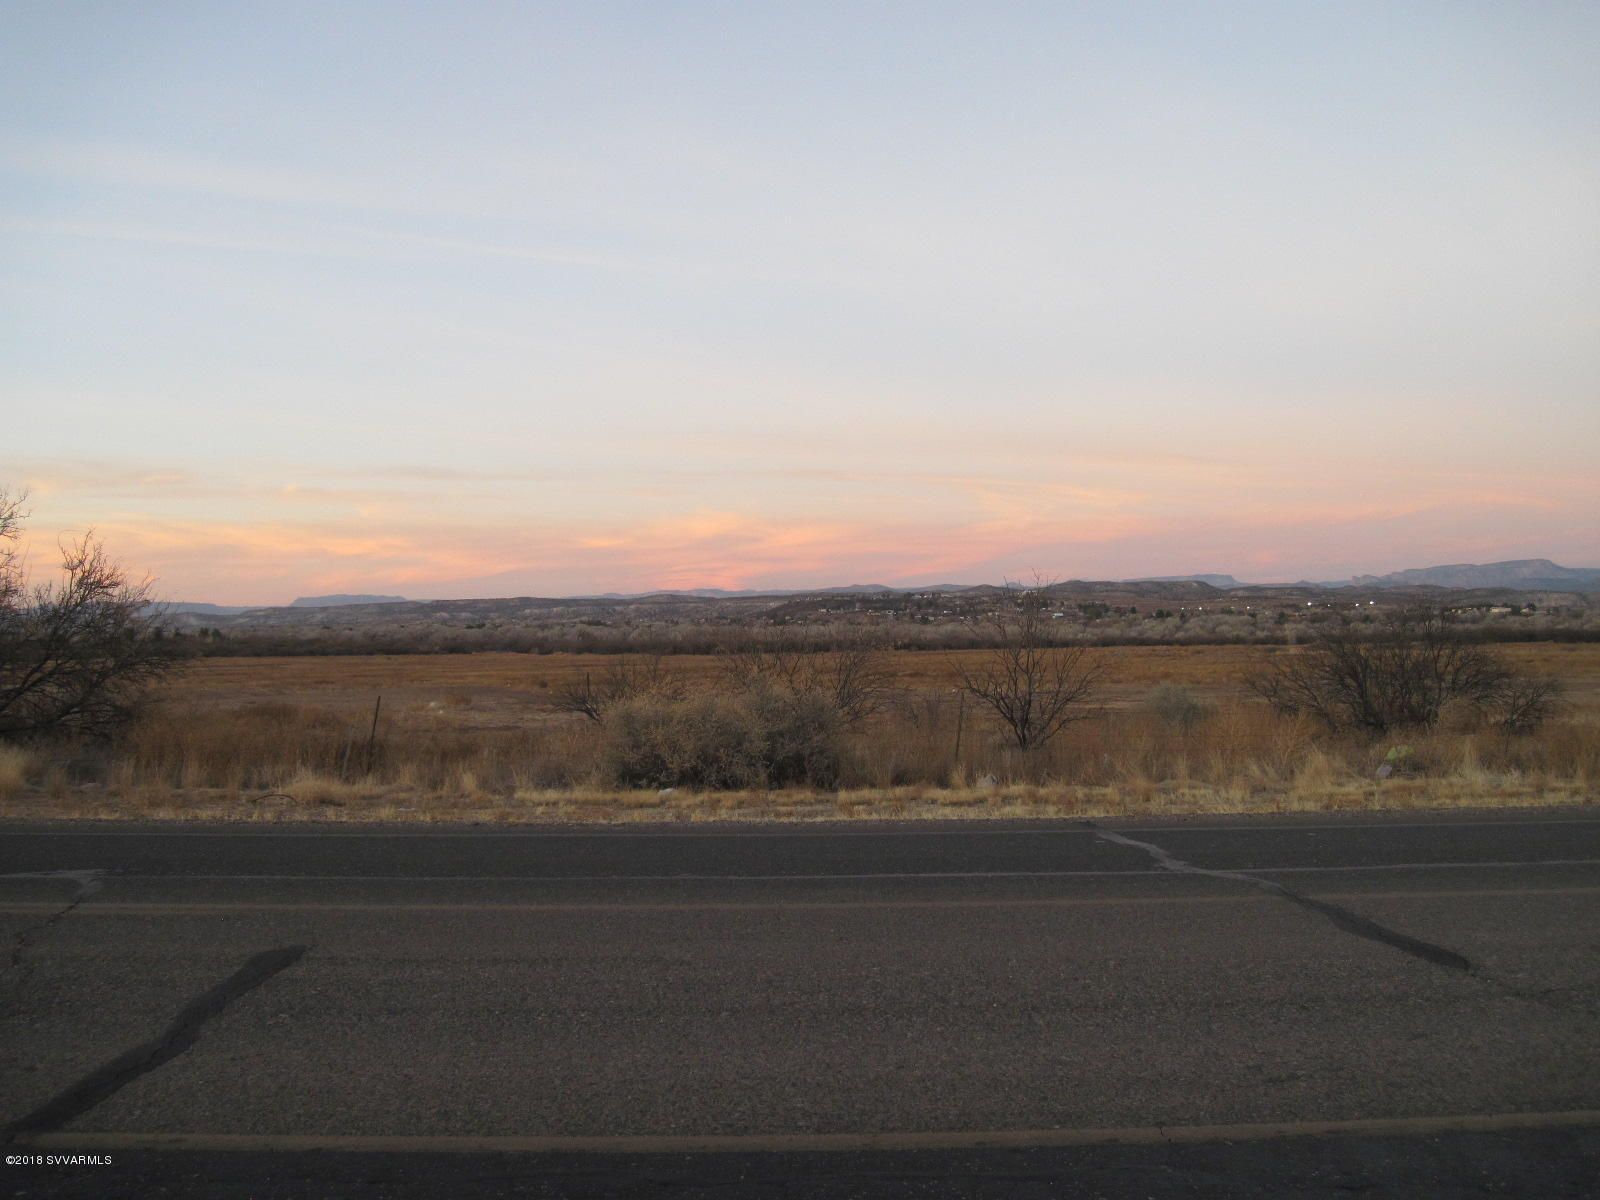 900 W Finnie Flat Rd, Camp Verde, Arizona 86322, ,Lots And Land,For Sale,900 W Finnie Flat Rd,515435